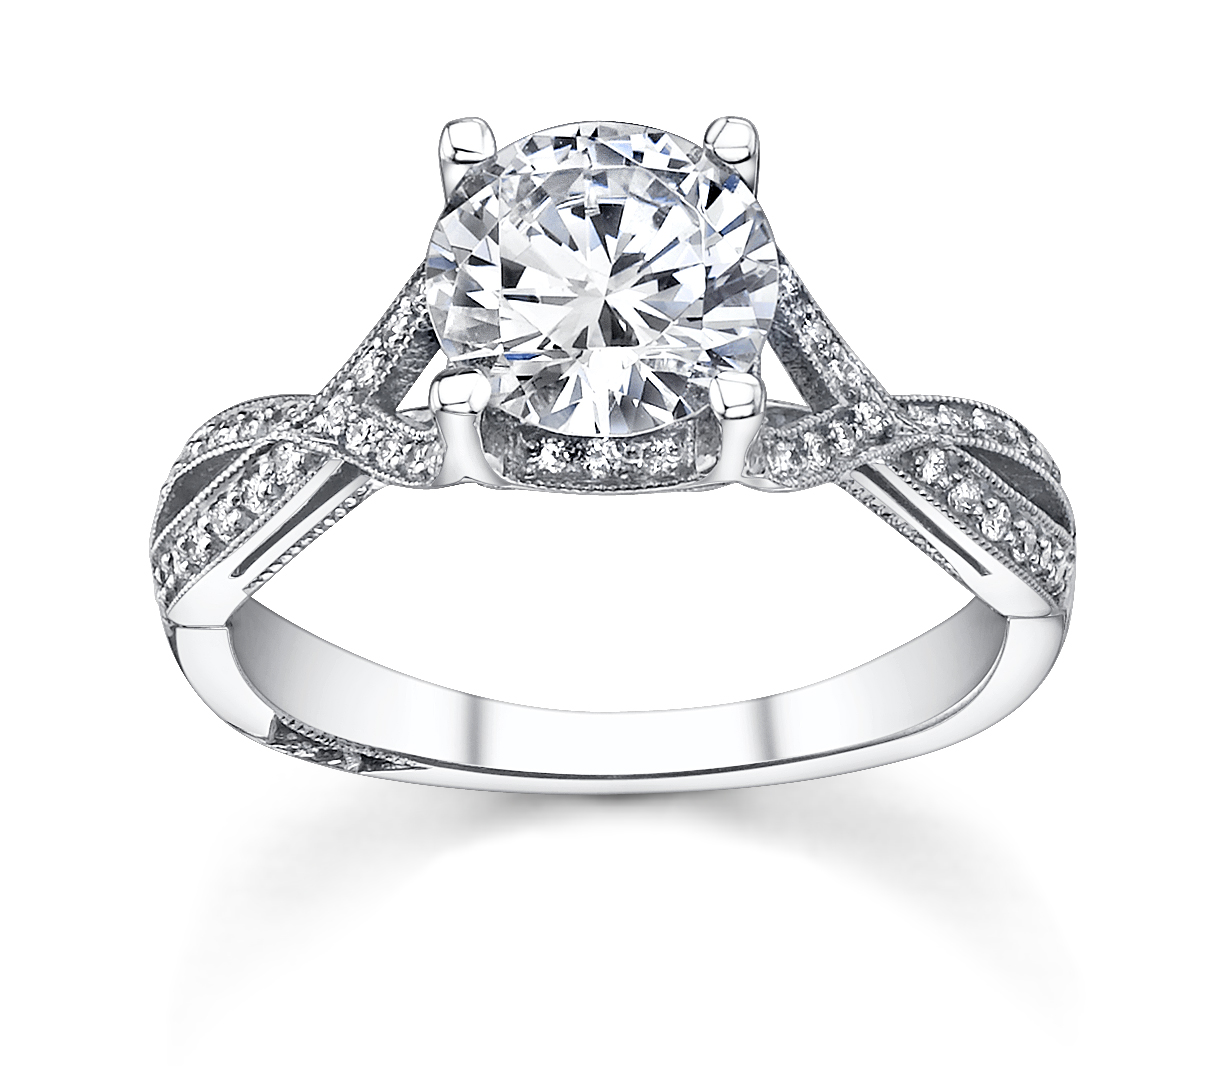 Platinum Engagement Ring of the Day Tacori Fully Engaged